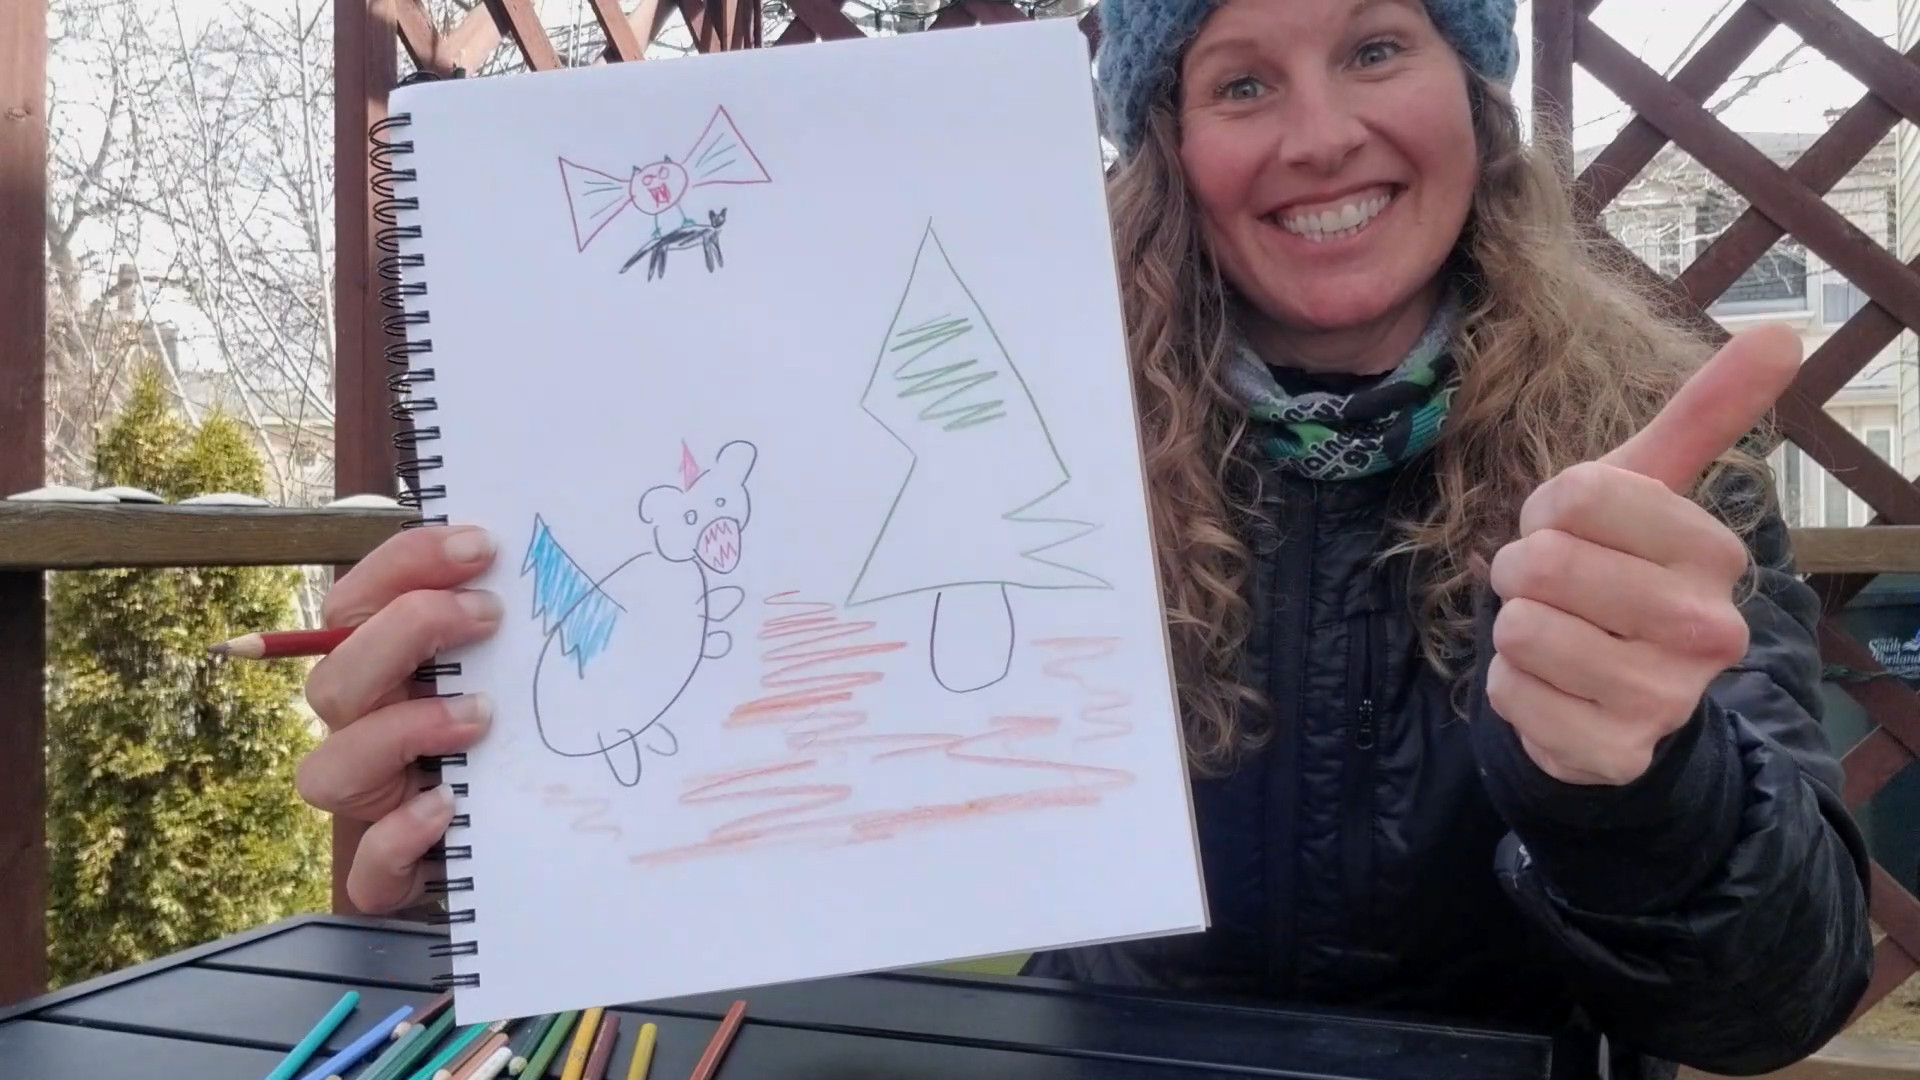 women holding sketchbook with poorly drawn animals on it